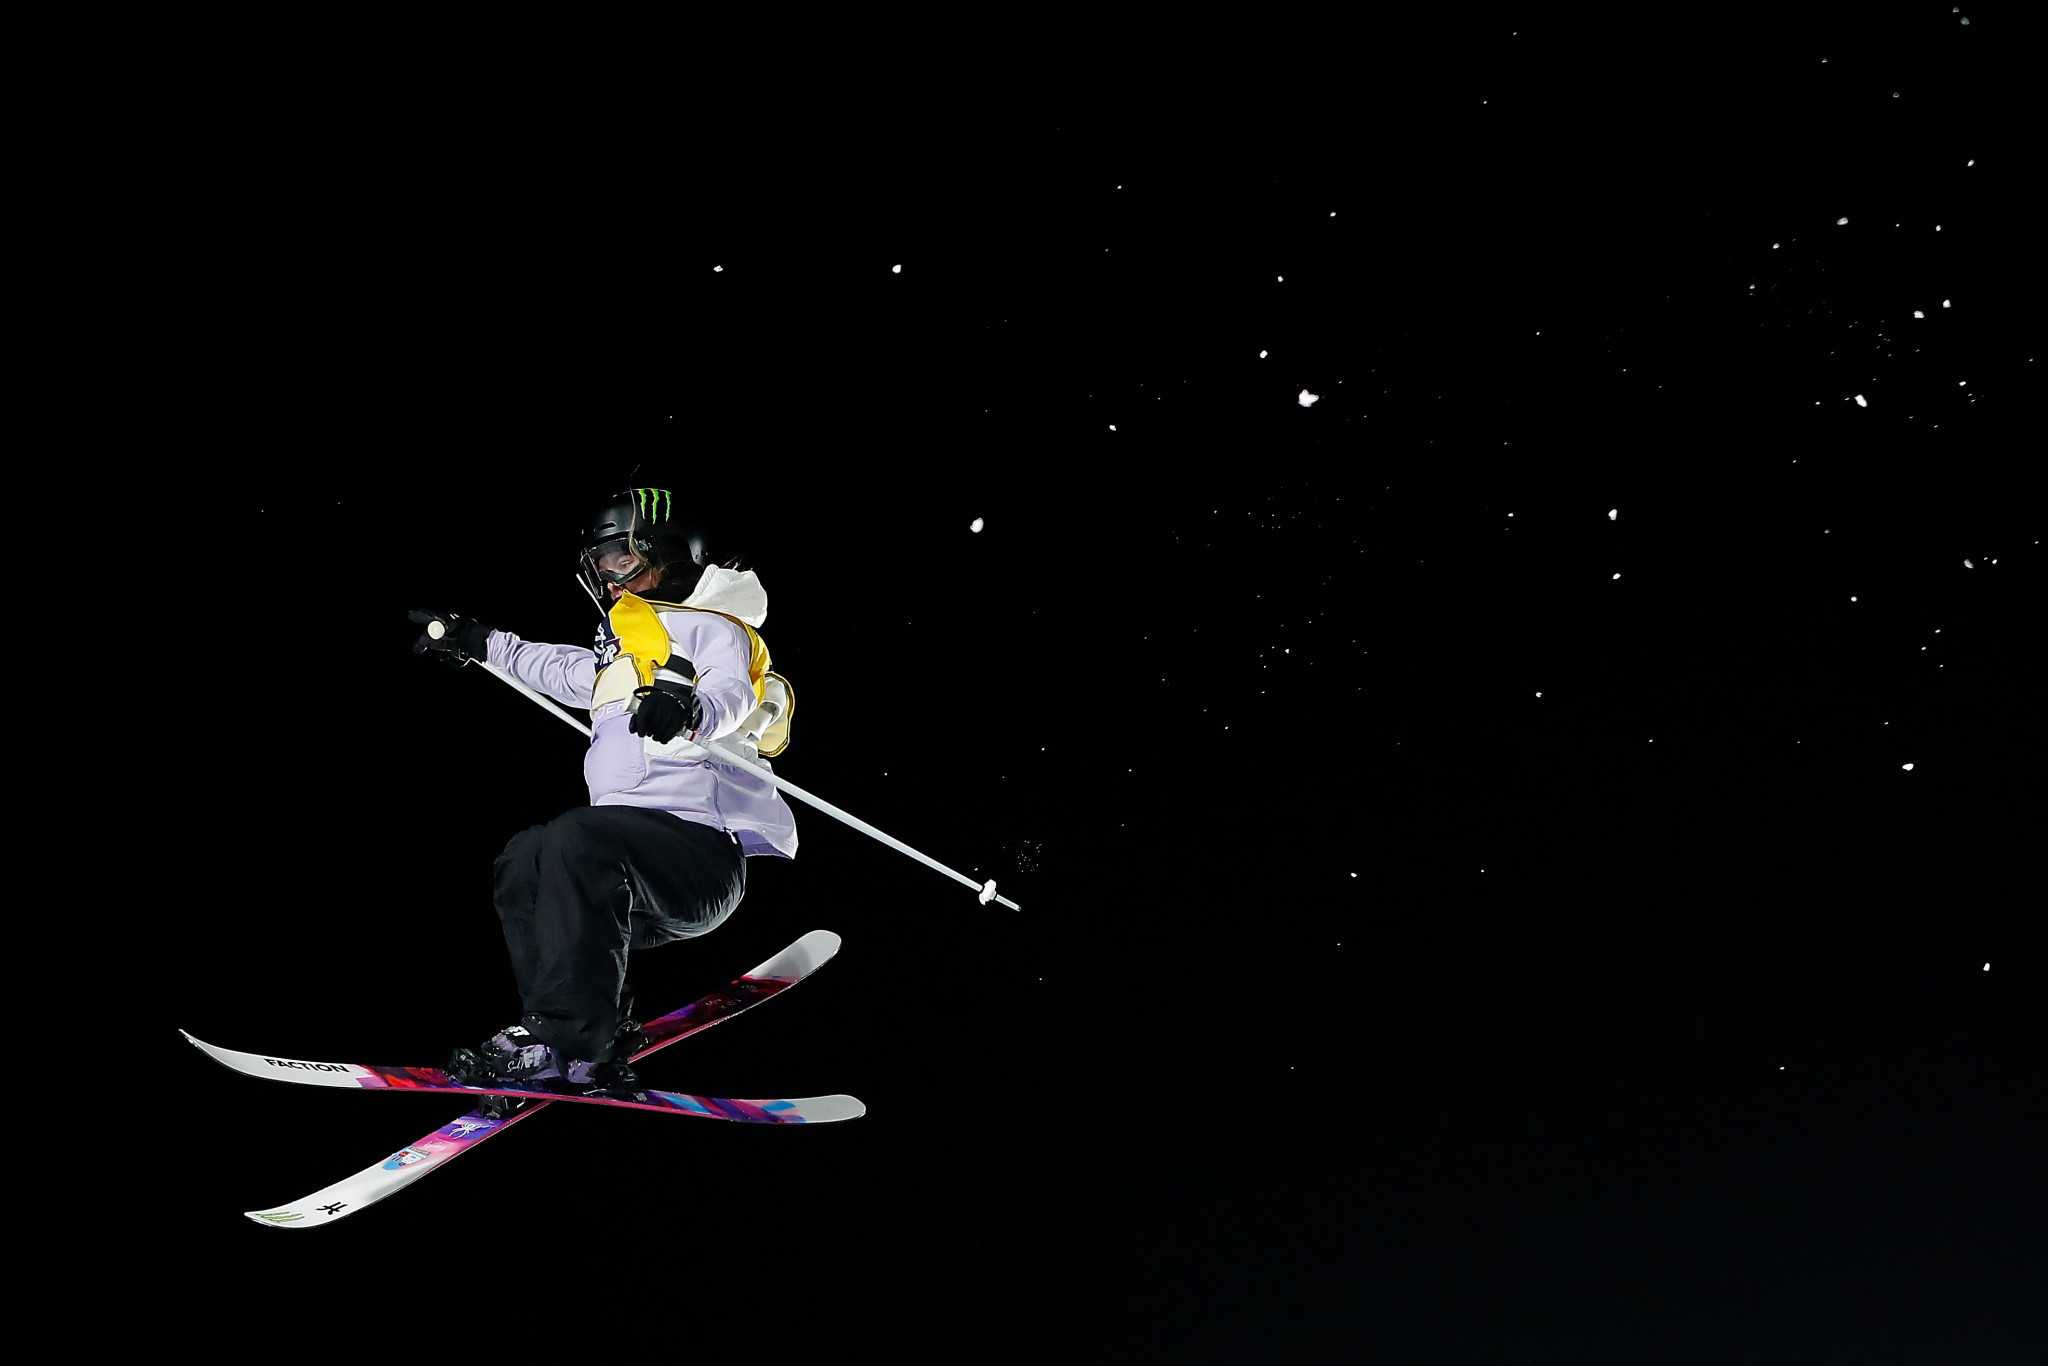 Giulia Tanno was named big air champion in the Freeski World Cup after the 2019-2020 season ended abruptly due to coronavirus ©Getty Images